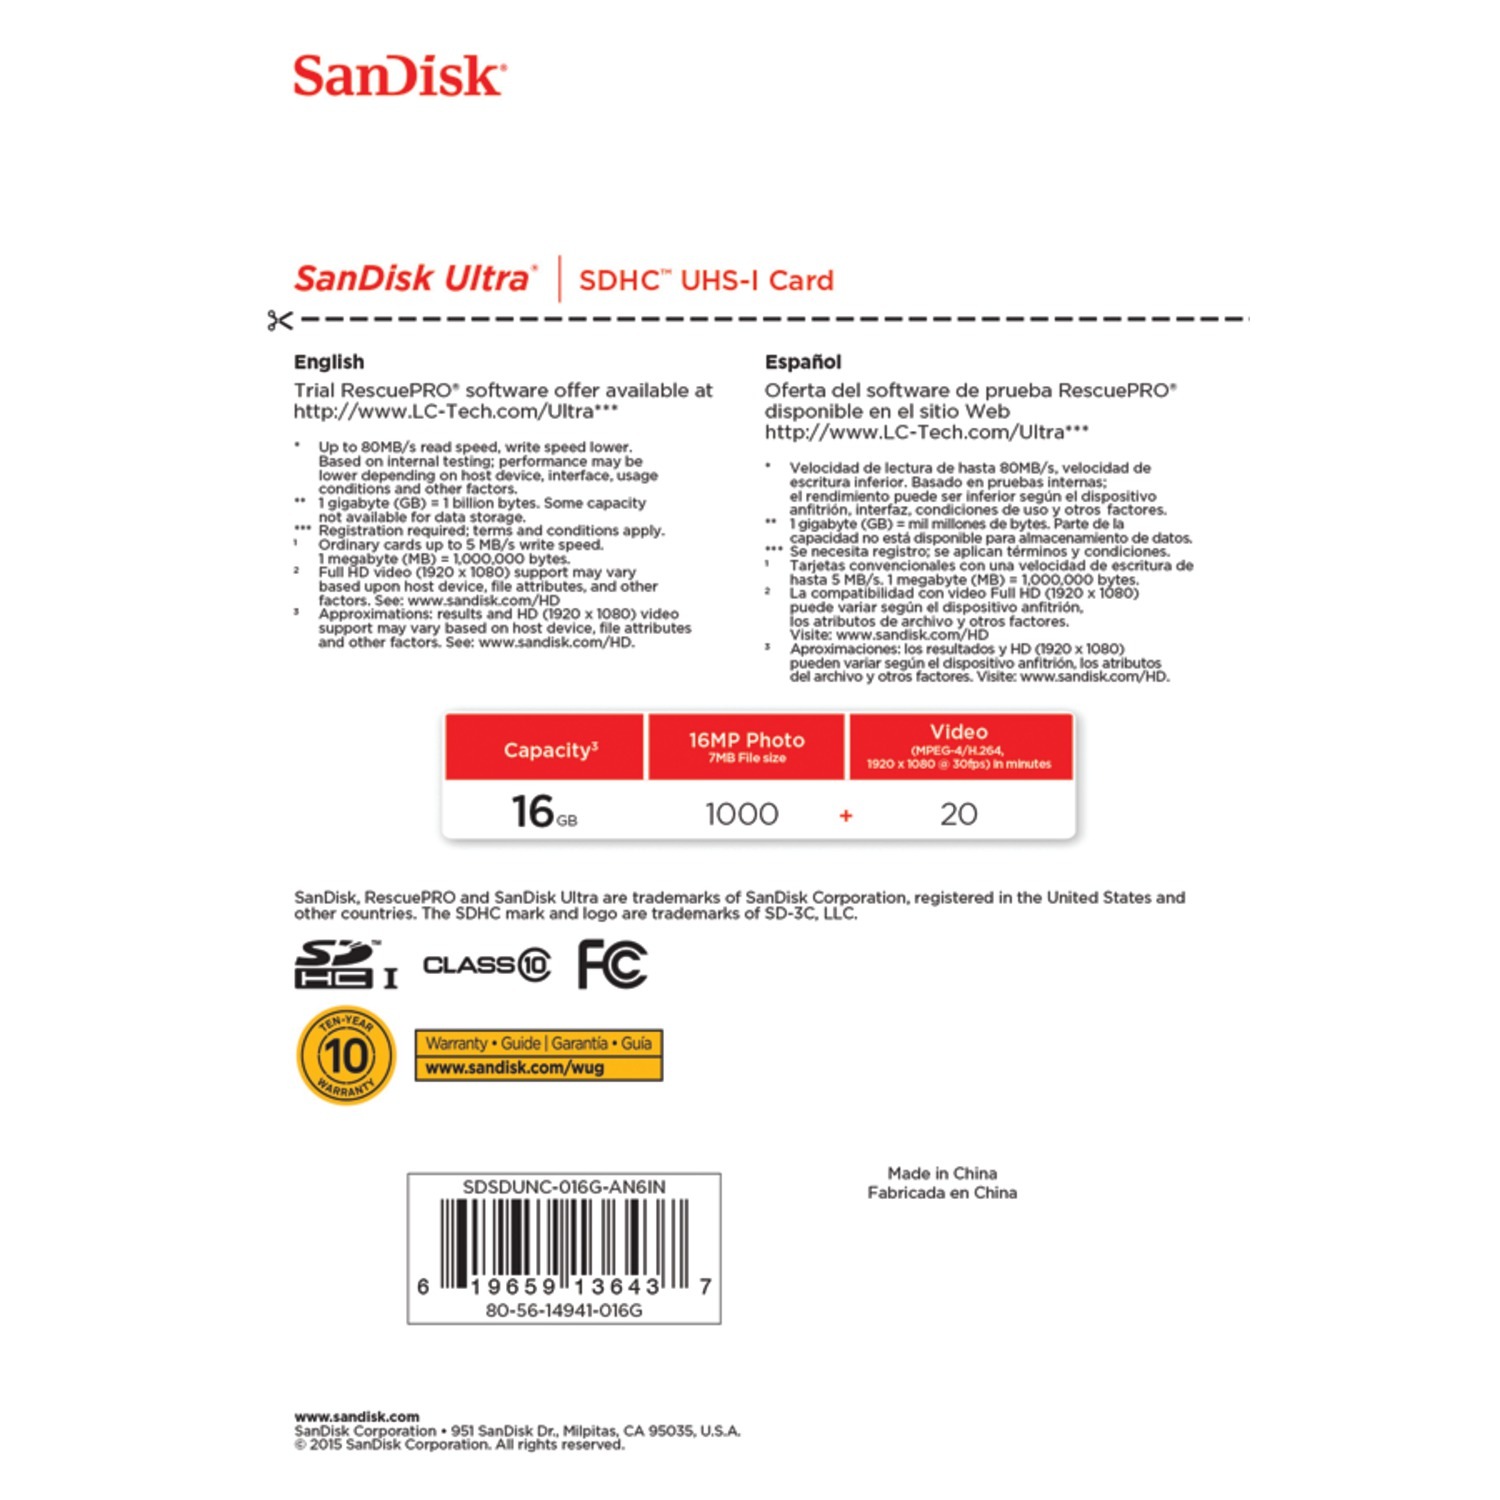 Sandisk 16gb Class 10 Sdhc Uhs I Up To 80mb S Memory Card Ultra Sdsdunc